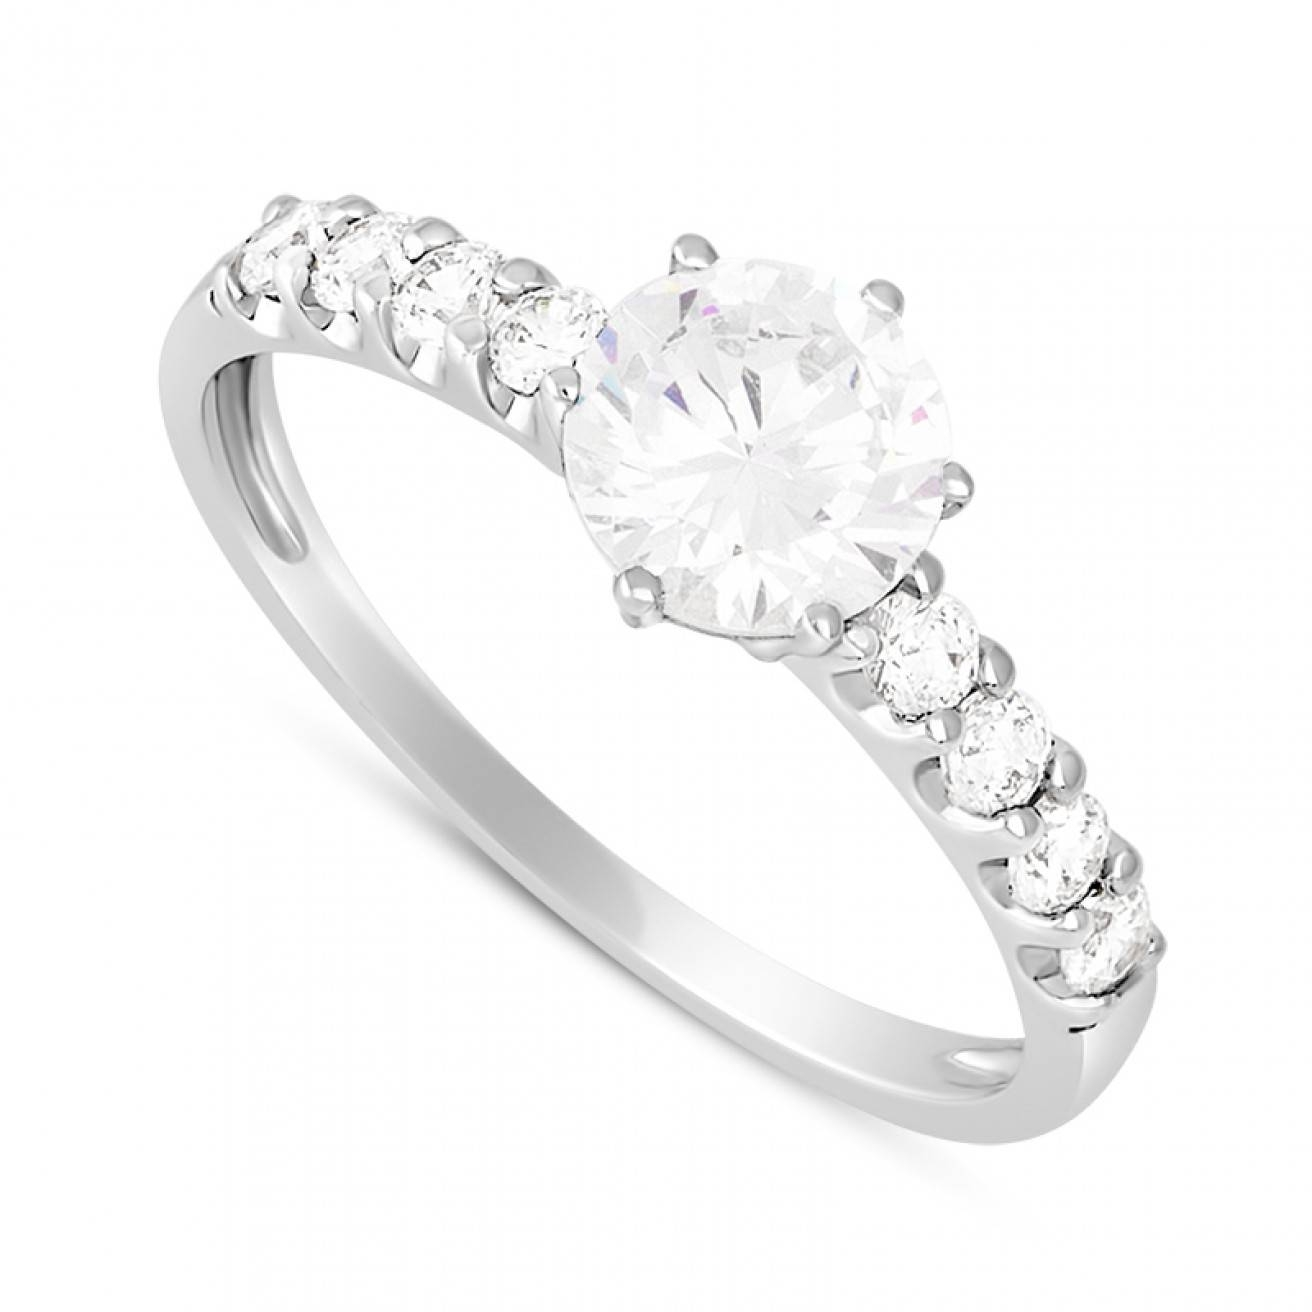 9ct White Gold Round And Baguette Cubic Zirconia Ring Intended For White Gold Zirconia Wedding Rings (View 9 of 15)